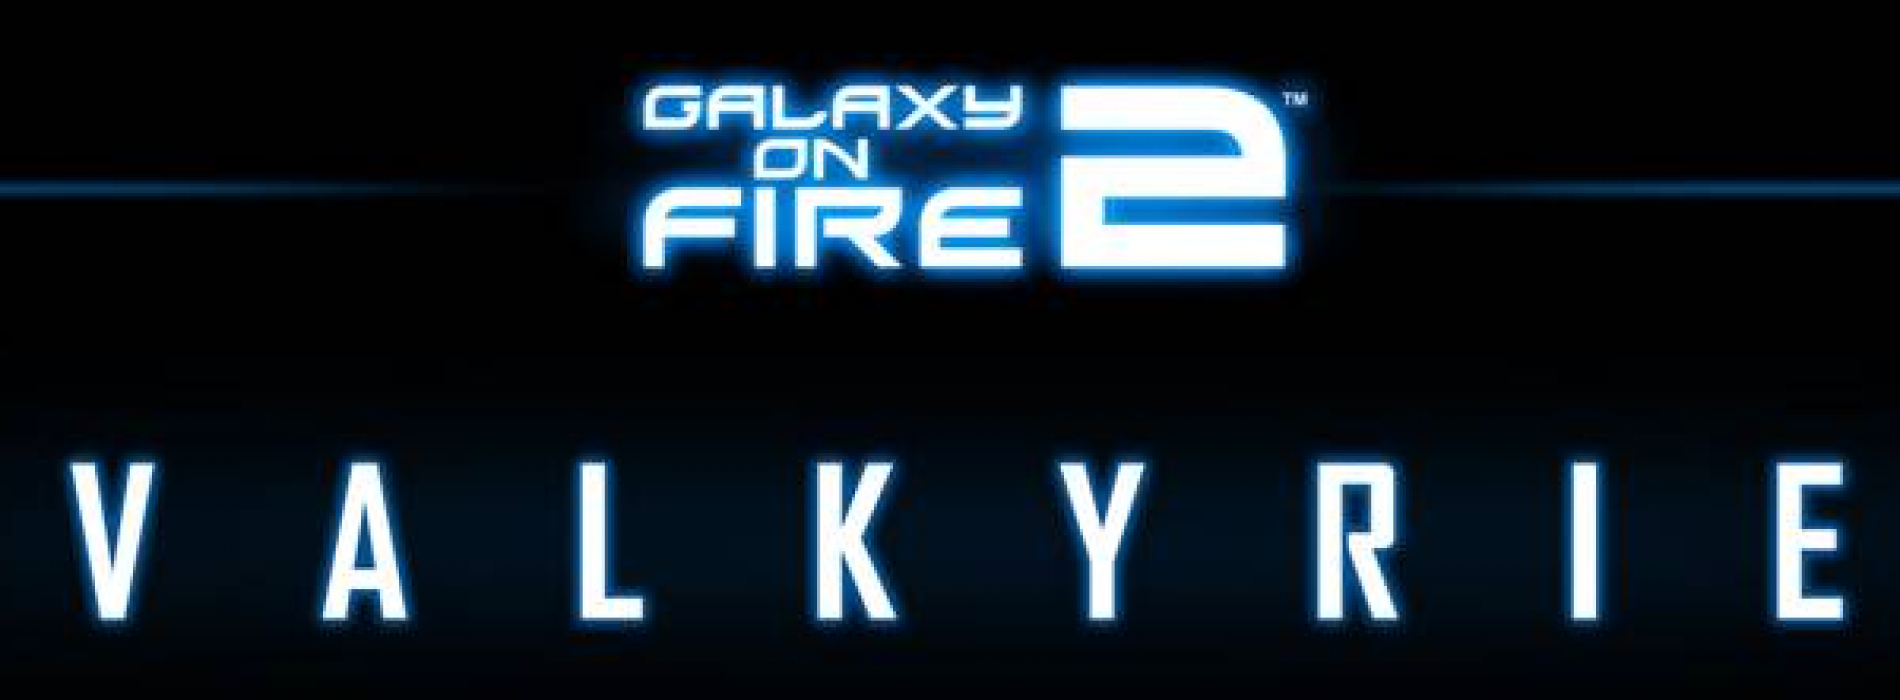 Galaxy on Fire 2 is now free for Xperia PLAY